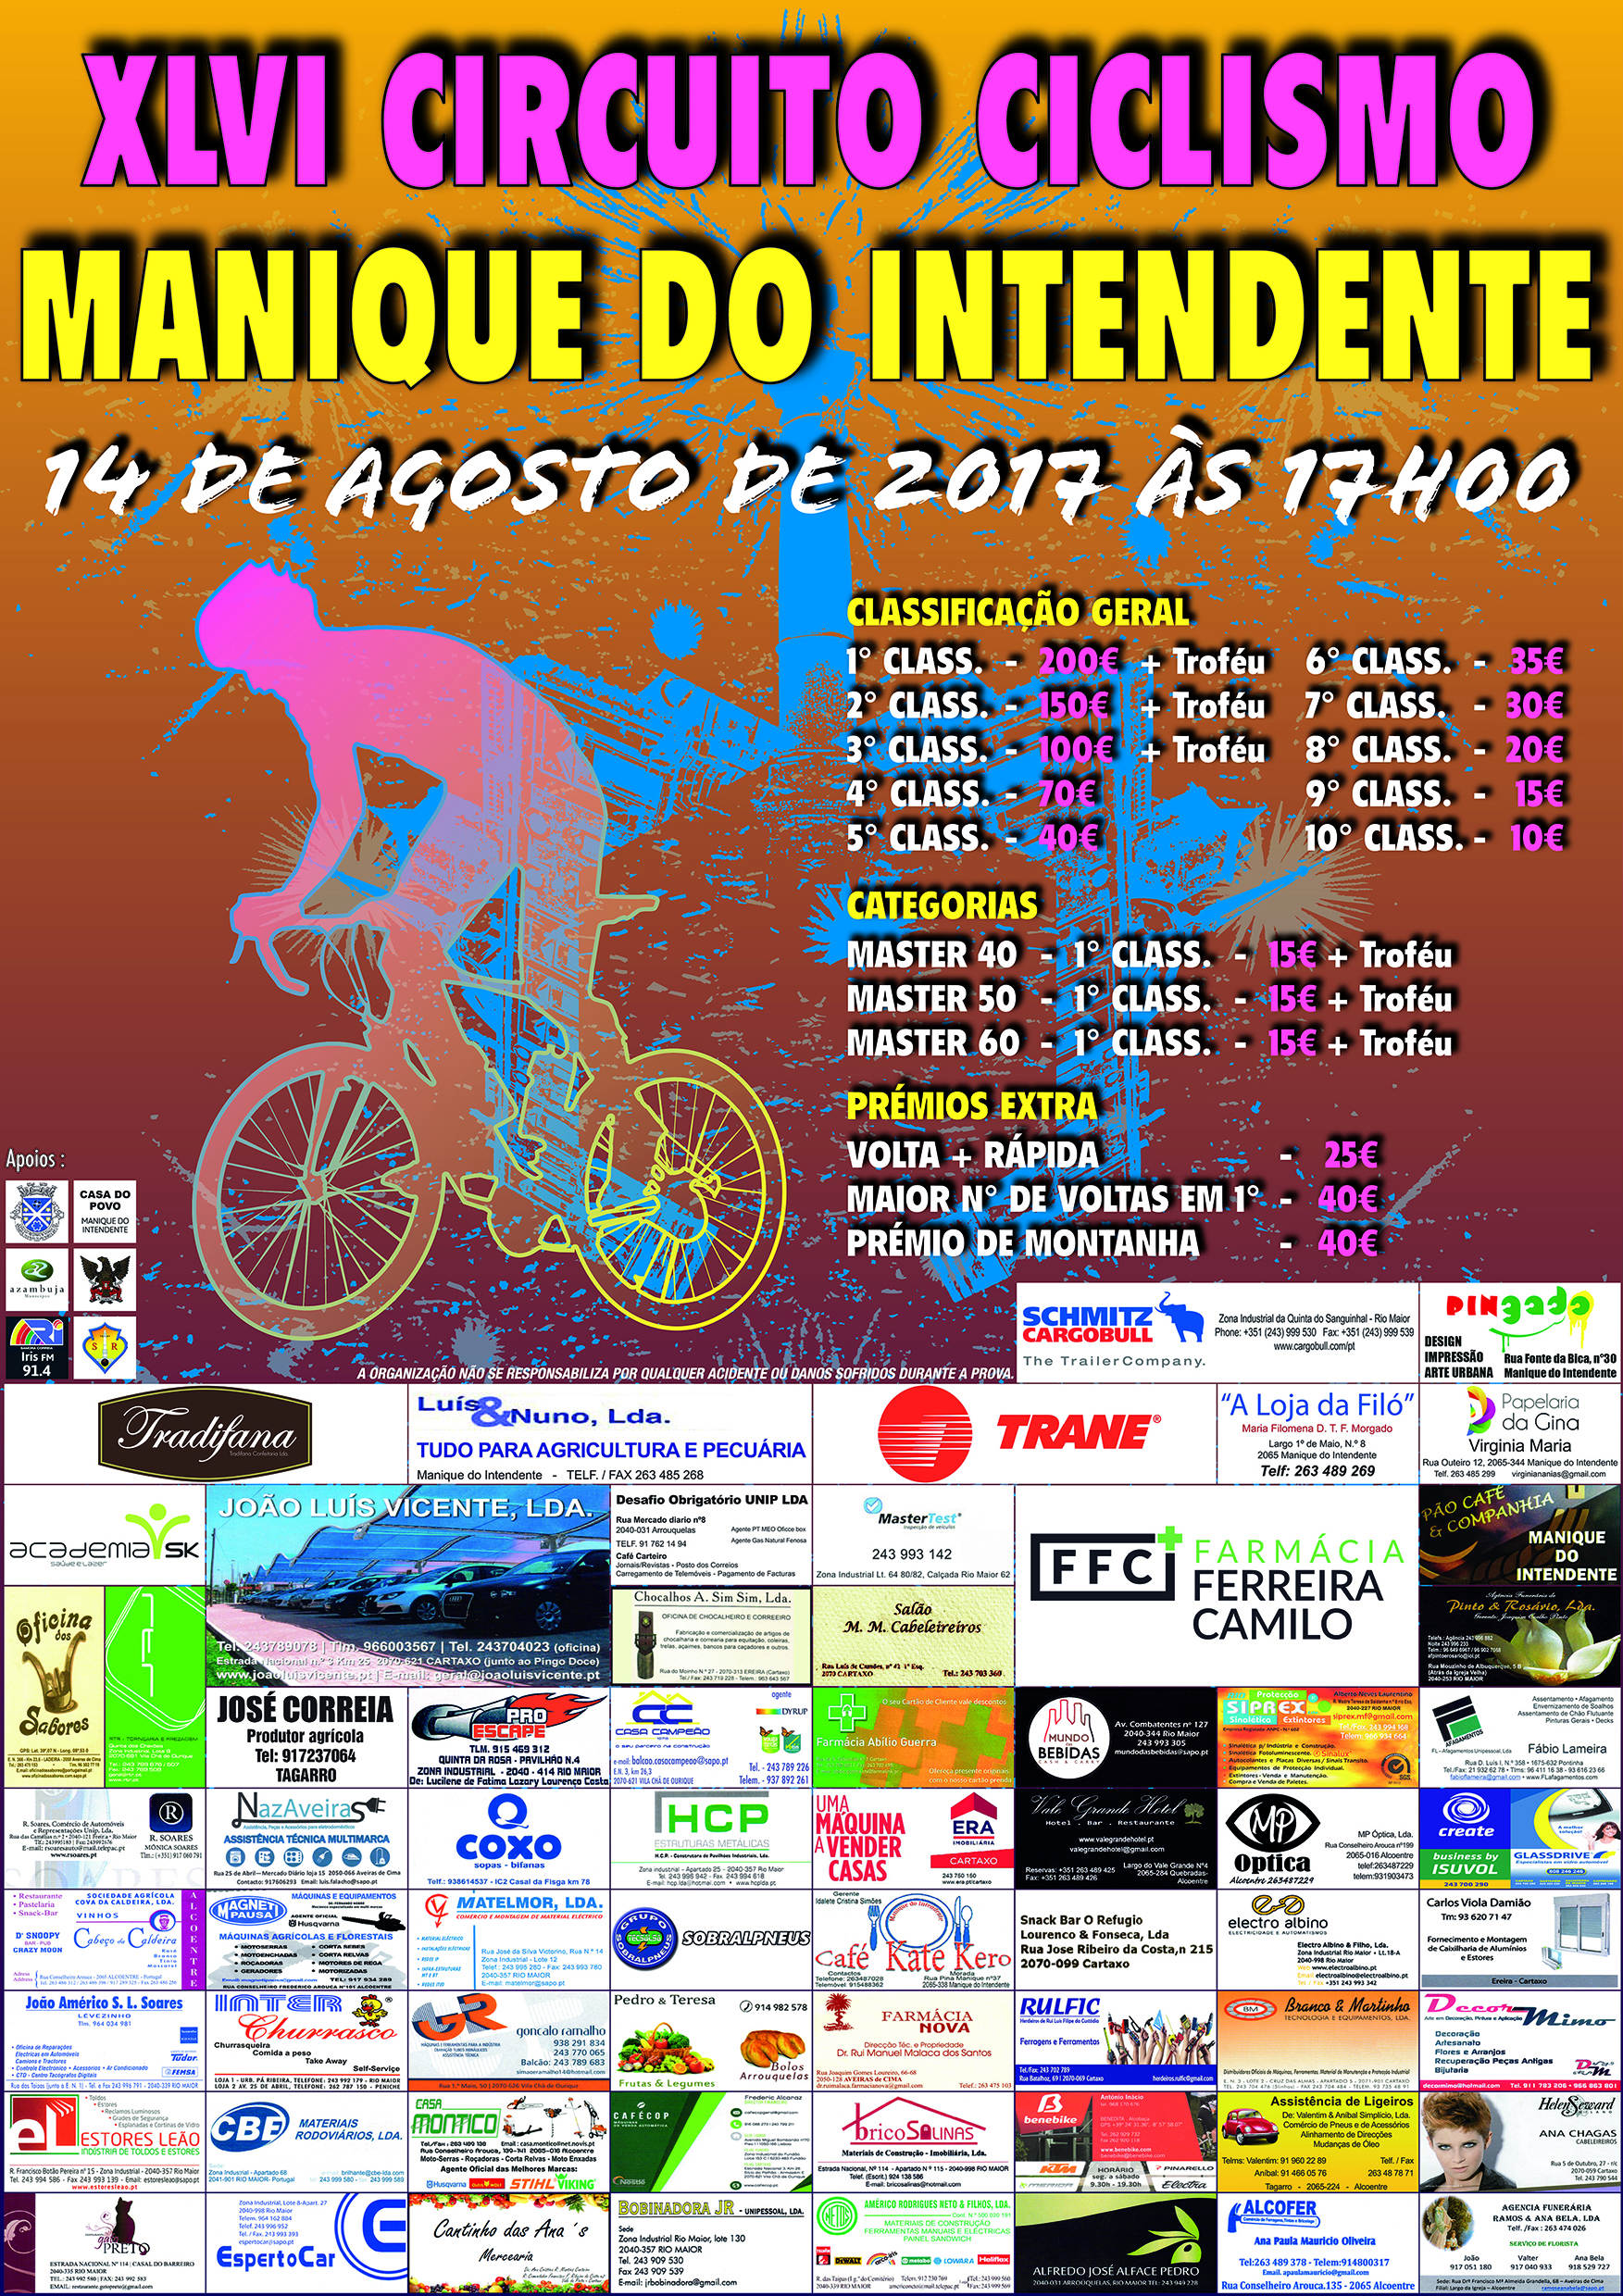 20170814 Manique Cartaz Ciclismo